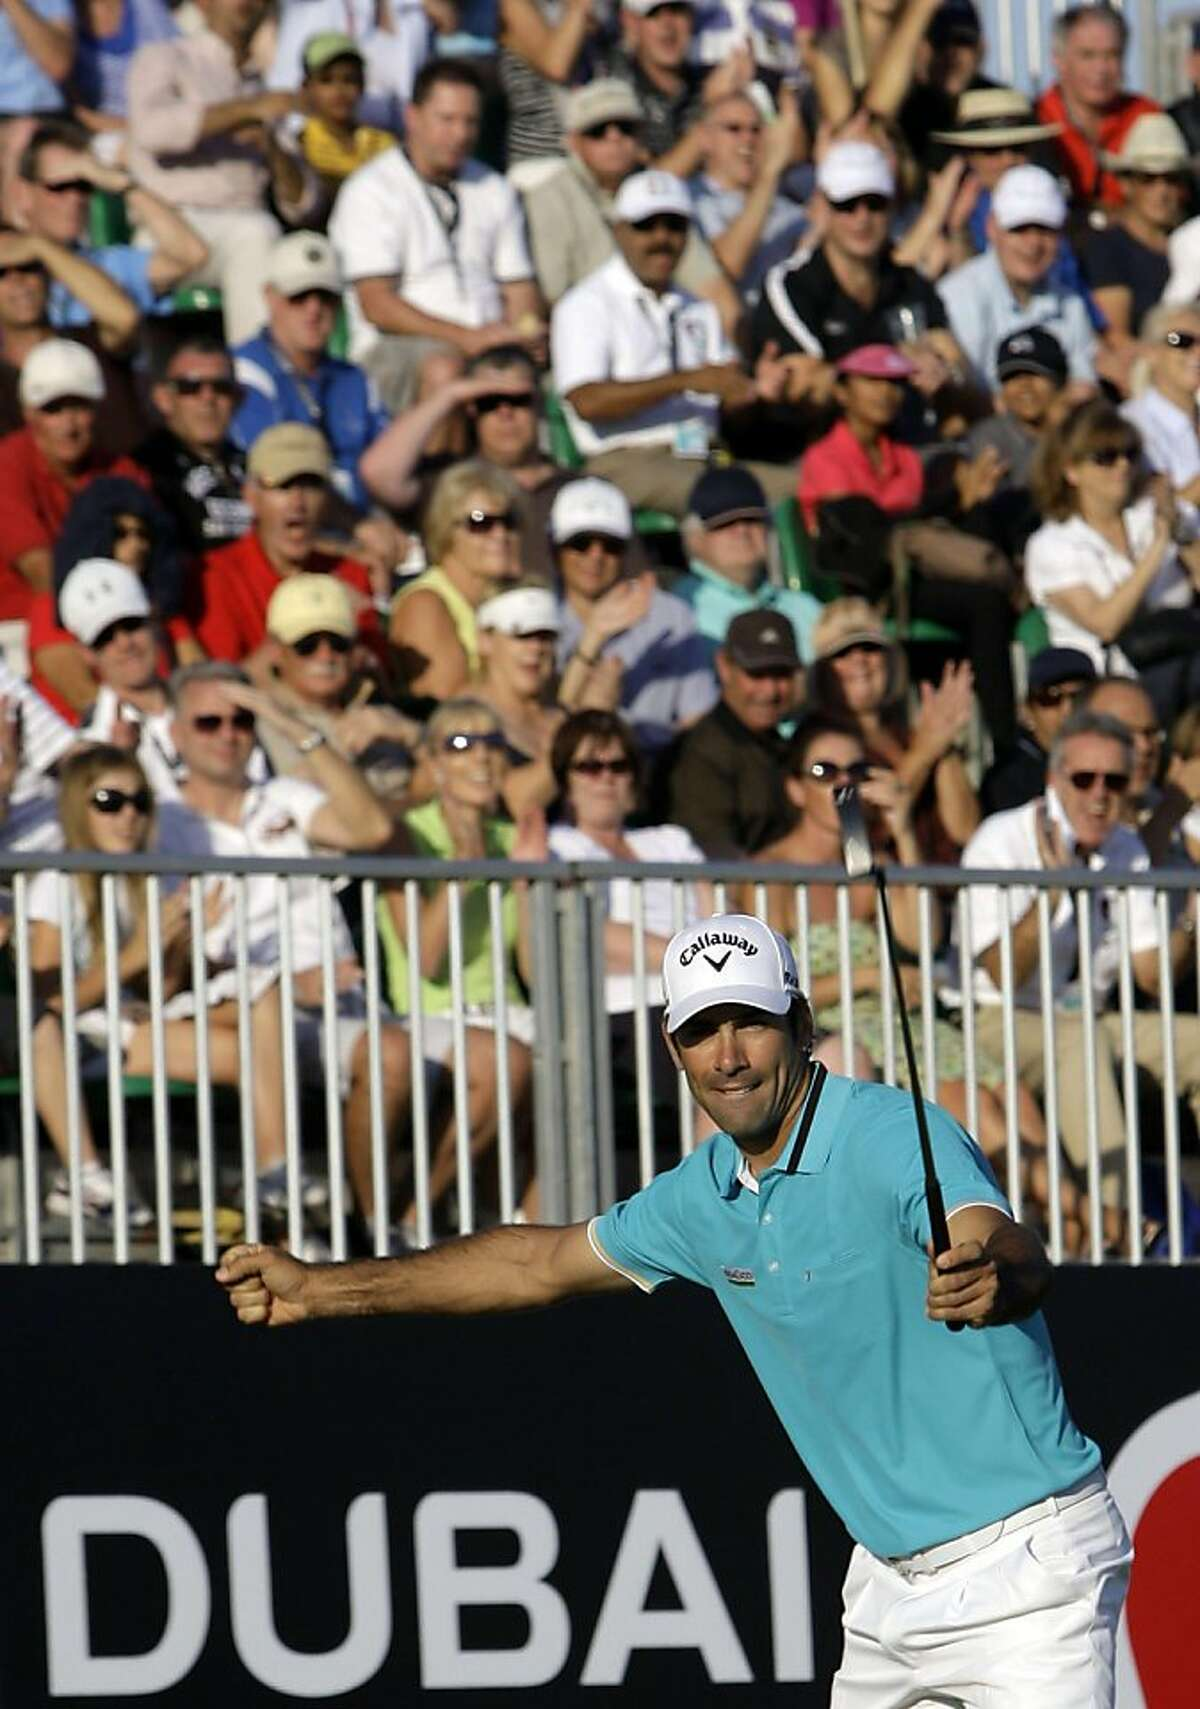 Alvaro Quiros from Spain and leader of the second round of the Dubai World Championship golf tournament celebrates after he finishes his round on the 18th hole on Friday, Dec. 9, 2011 in Dubai, United Arab Emirates. (AP Photo/Kamran Jebreili) Ran on: 12-11-2011 Spains Alvaro Quiros celebrates his finish in the second round in Dubai. He holds a 2-stroke lead going into today. Ran on: 12-11-2011 Spains Alvaro Quiros celebrates his finish in the second round in Dubai. He holds a 2-stroke lead going into today.